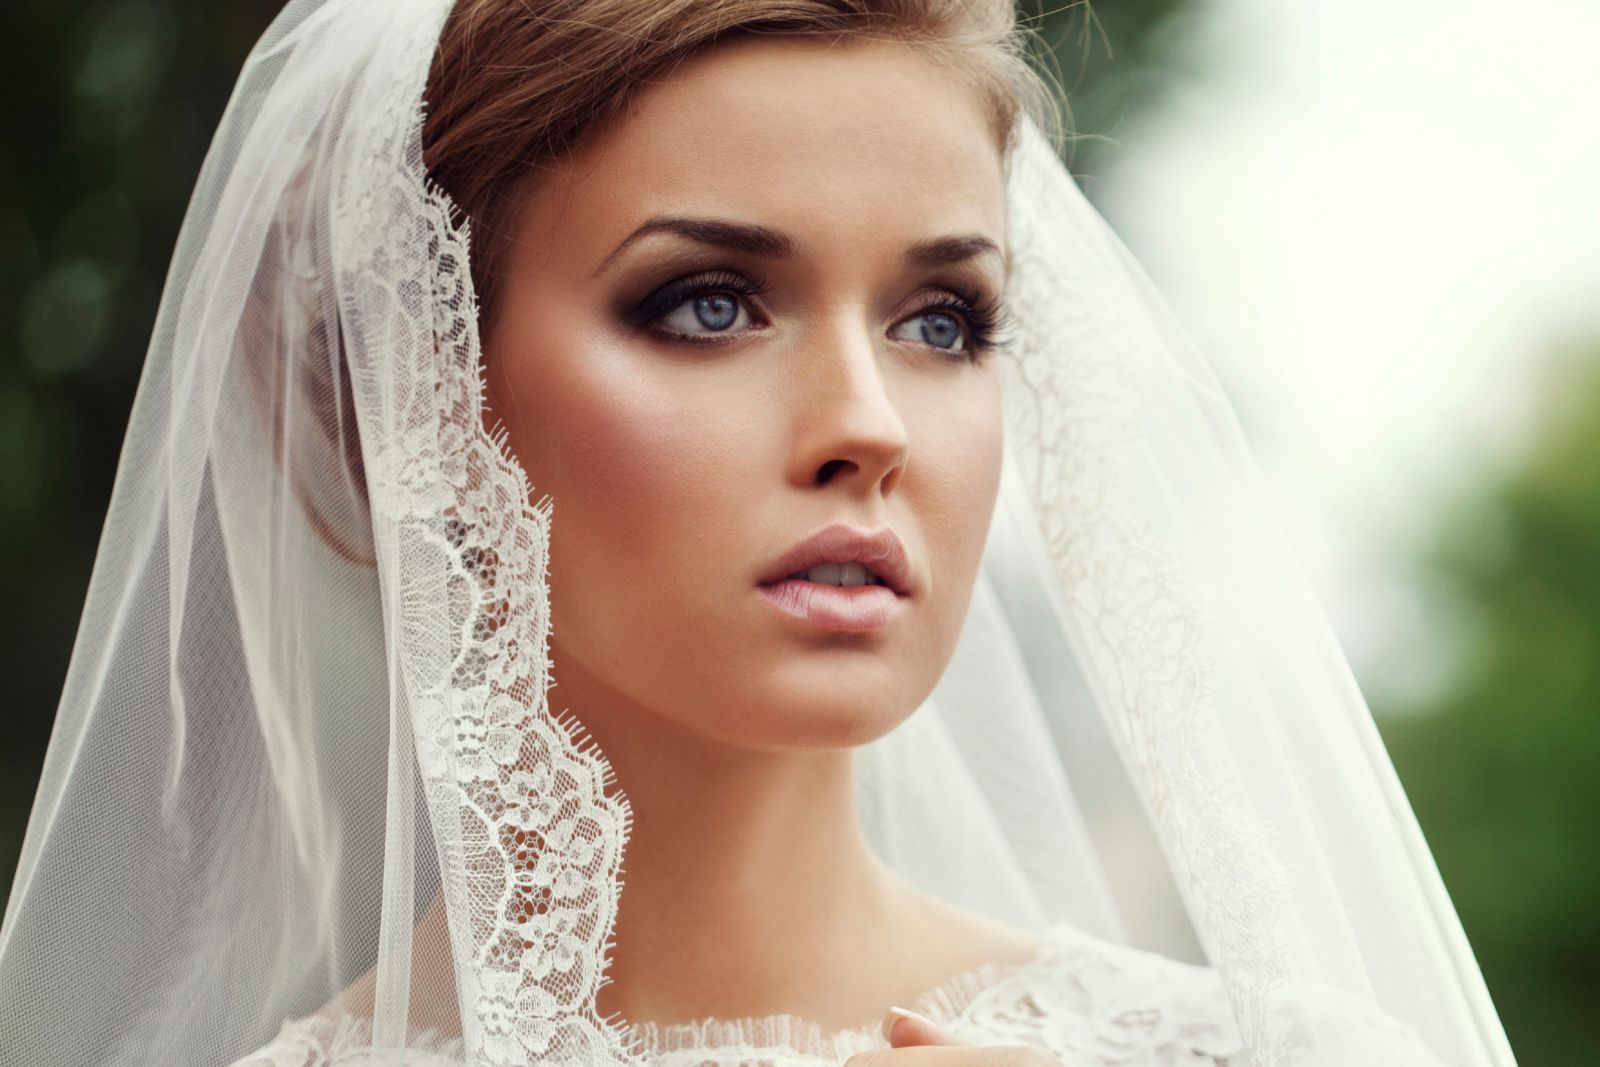 Have the Best Makeup on Your Wedding Day